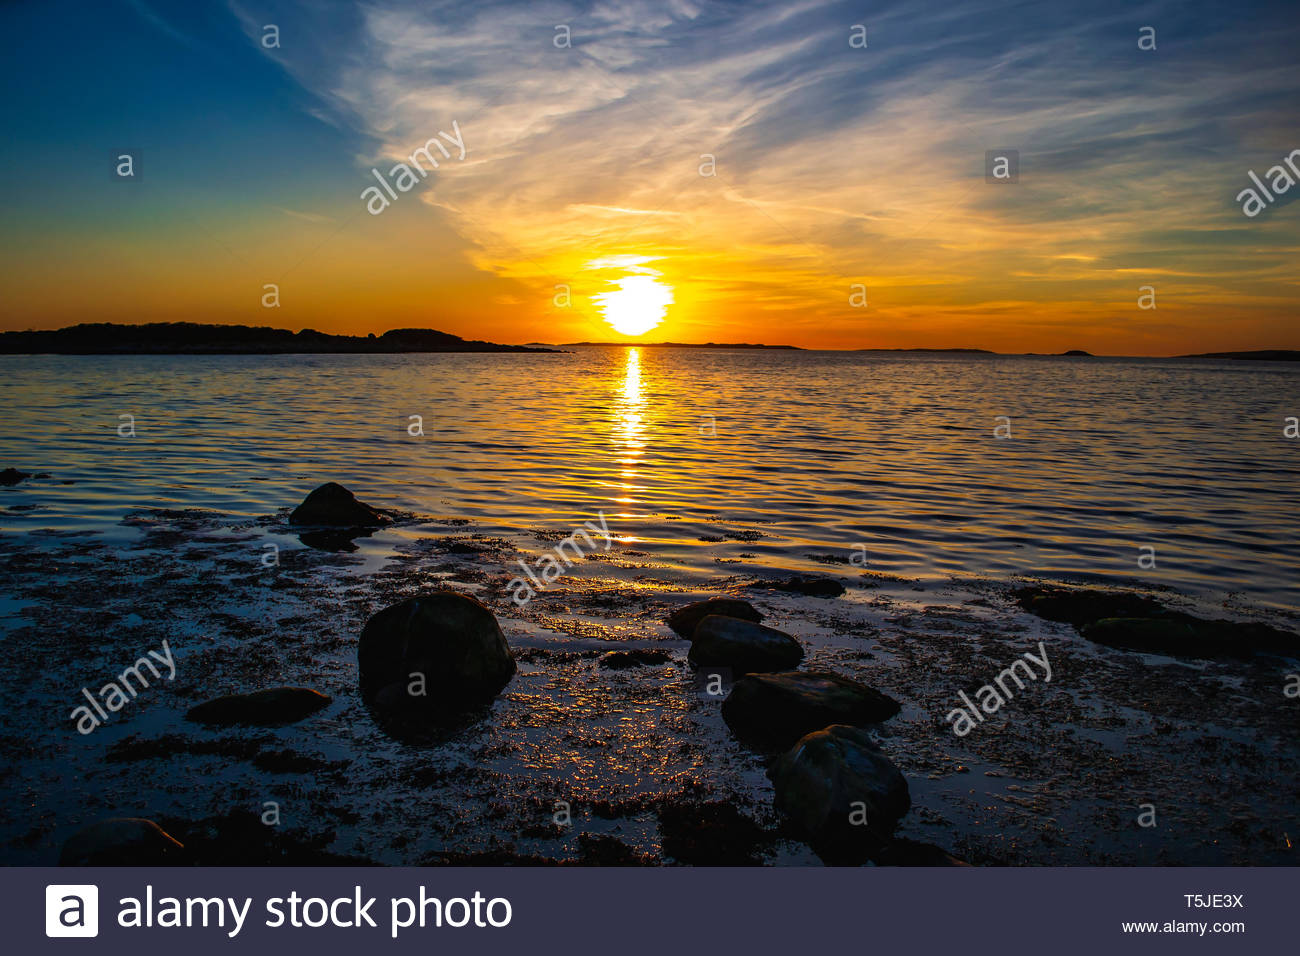 Colorful sunset by the calm sea. Beautiful shining light and reflections on the water in the dark evening. Coastal environment, magical atmosphere. - Stock Image